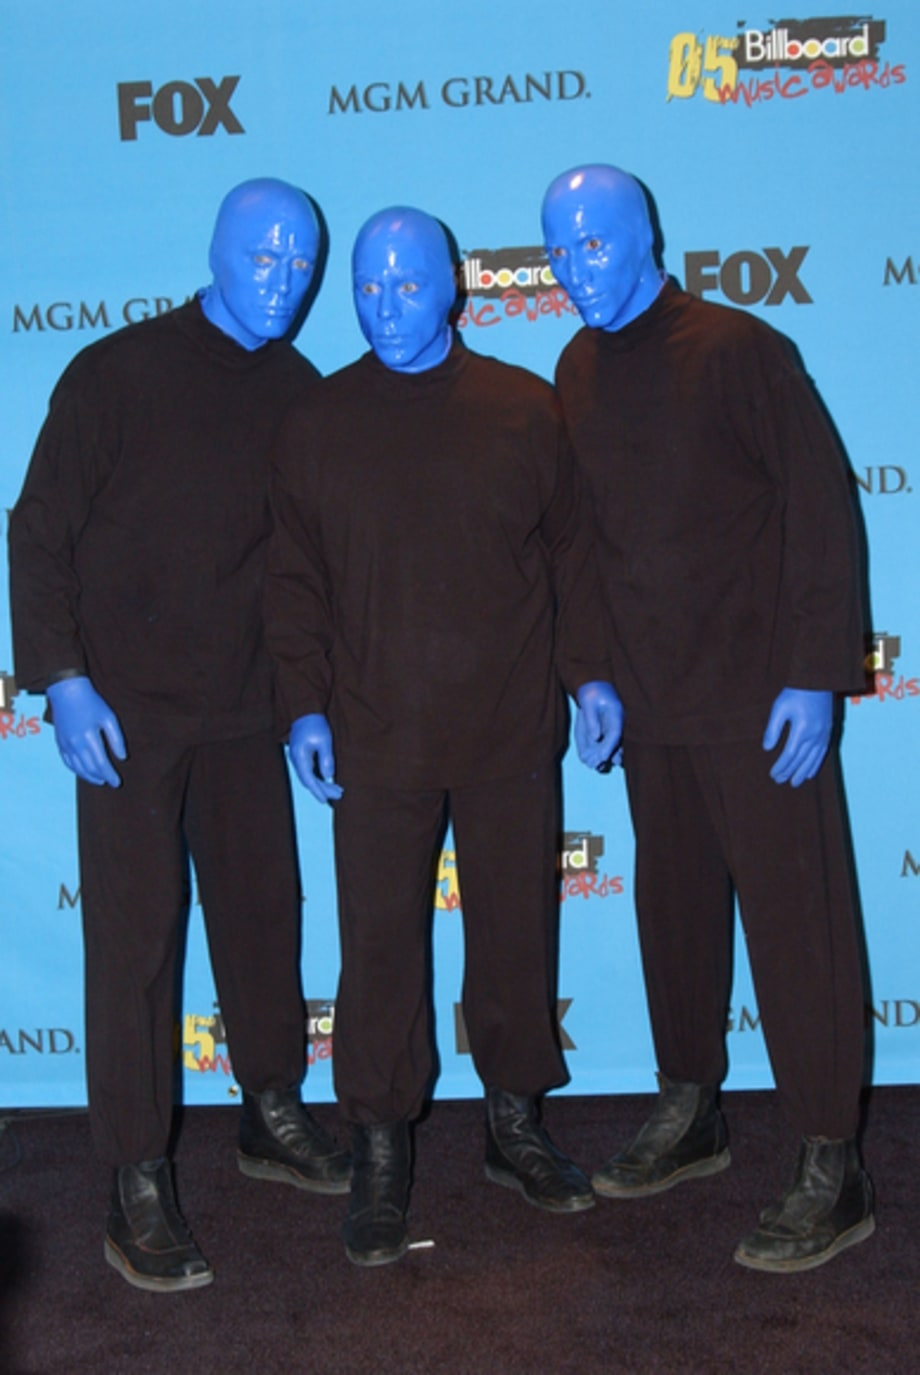 Blue Man Group - 2005 Billboard Awards, Las Vegas, NV 12/6/05